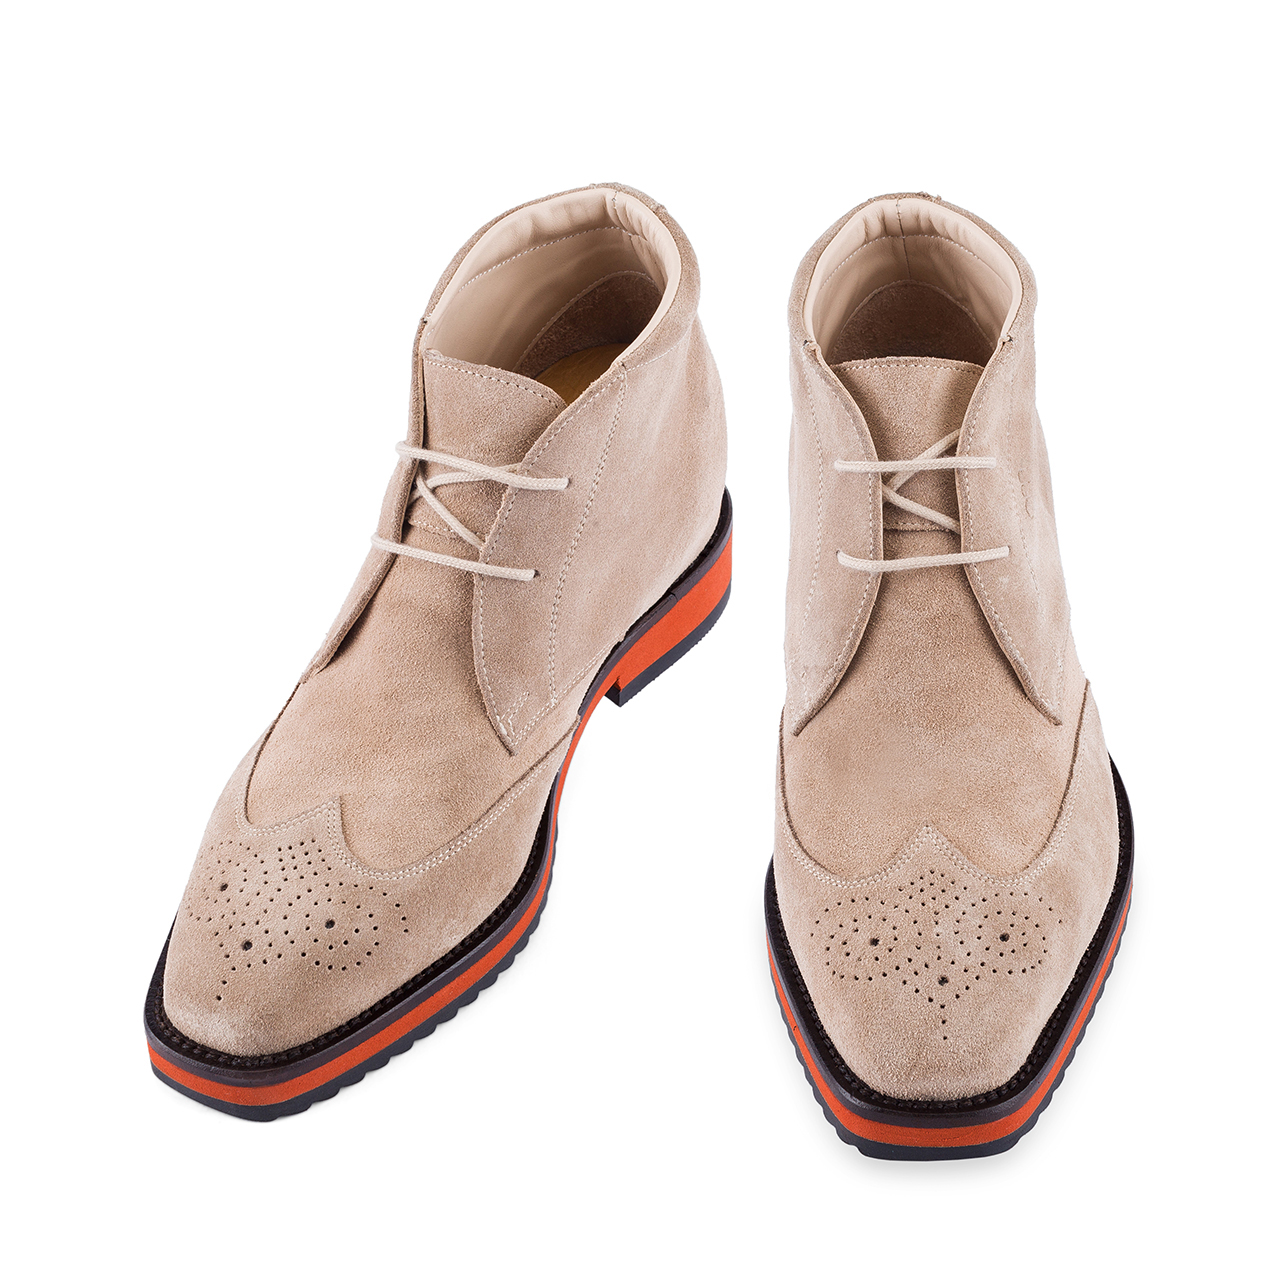 Walk Happy wearing high quality shoes made for comfort in today's fashion trends! Satisfying the needs of women men and kids! Deliverable to your door, just a click away!